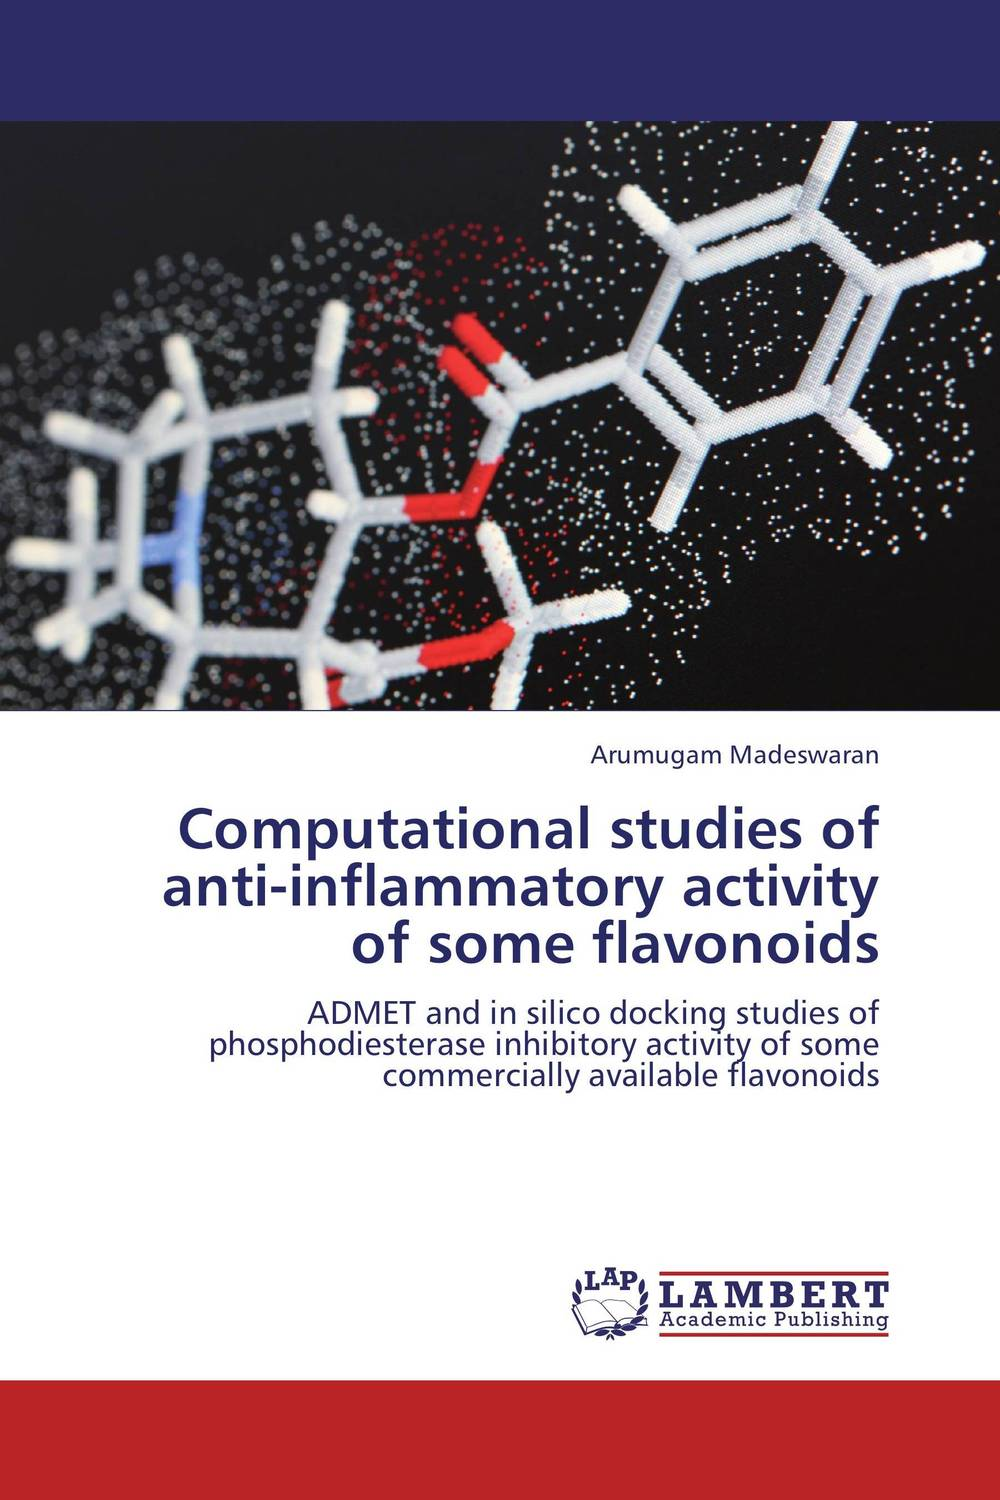 Computational studies of anti-inflammatory activity of some flavonoids web personalization models using computational intelligence